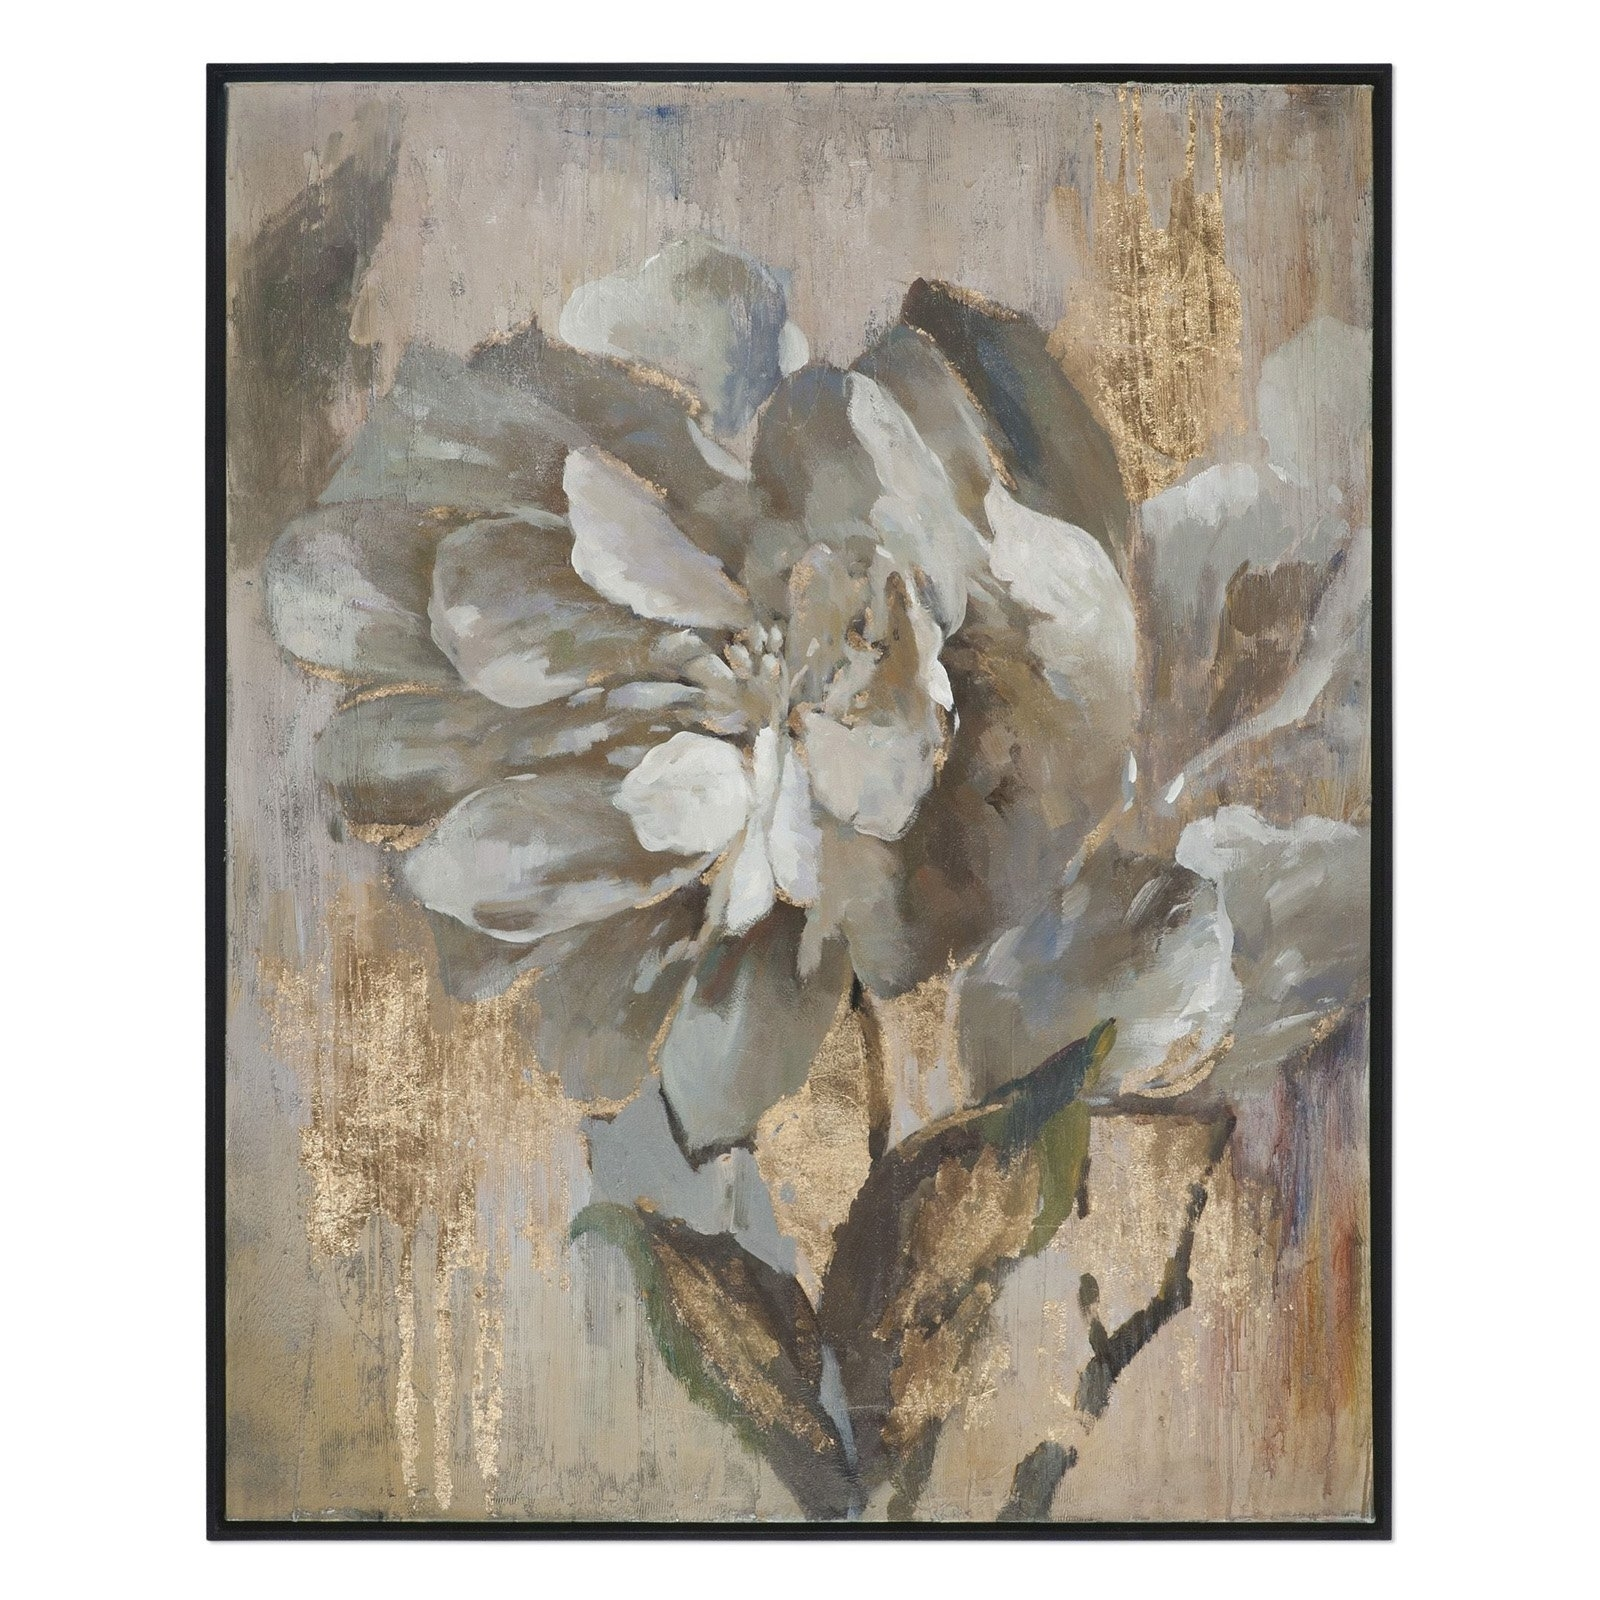 2017 Uttermost Metal Wall Art For Uttermost Dazzling Floral Wall Art (View 2 of 15)